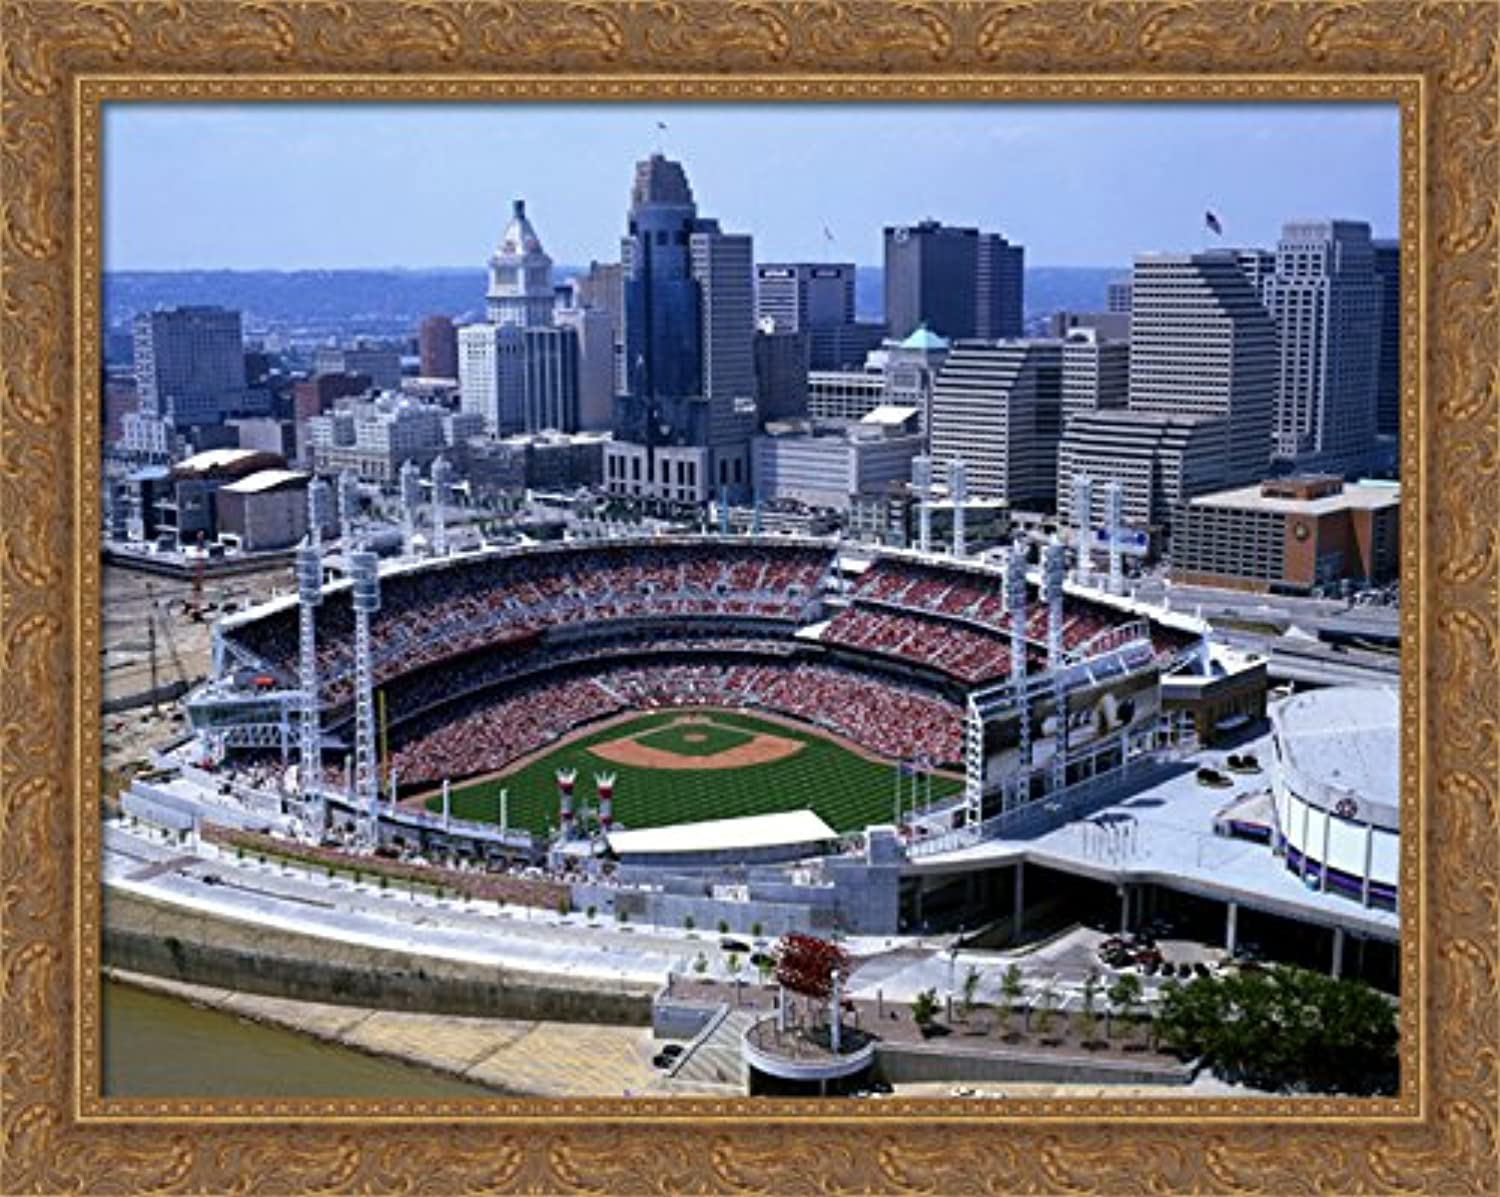 Great American Ballpark 34x28 Large gold Ornate Wood Framed Canvas ArtHome of the Cincinnati Reds